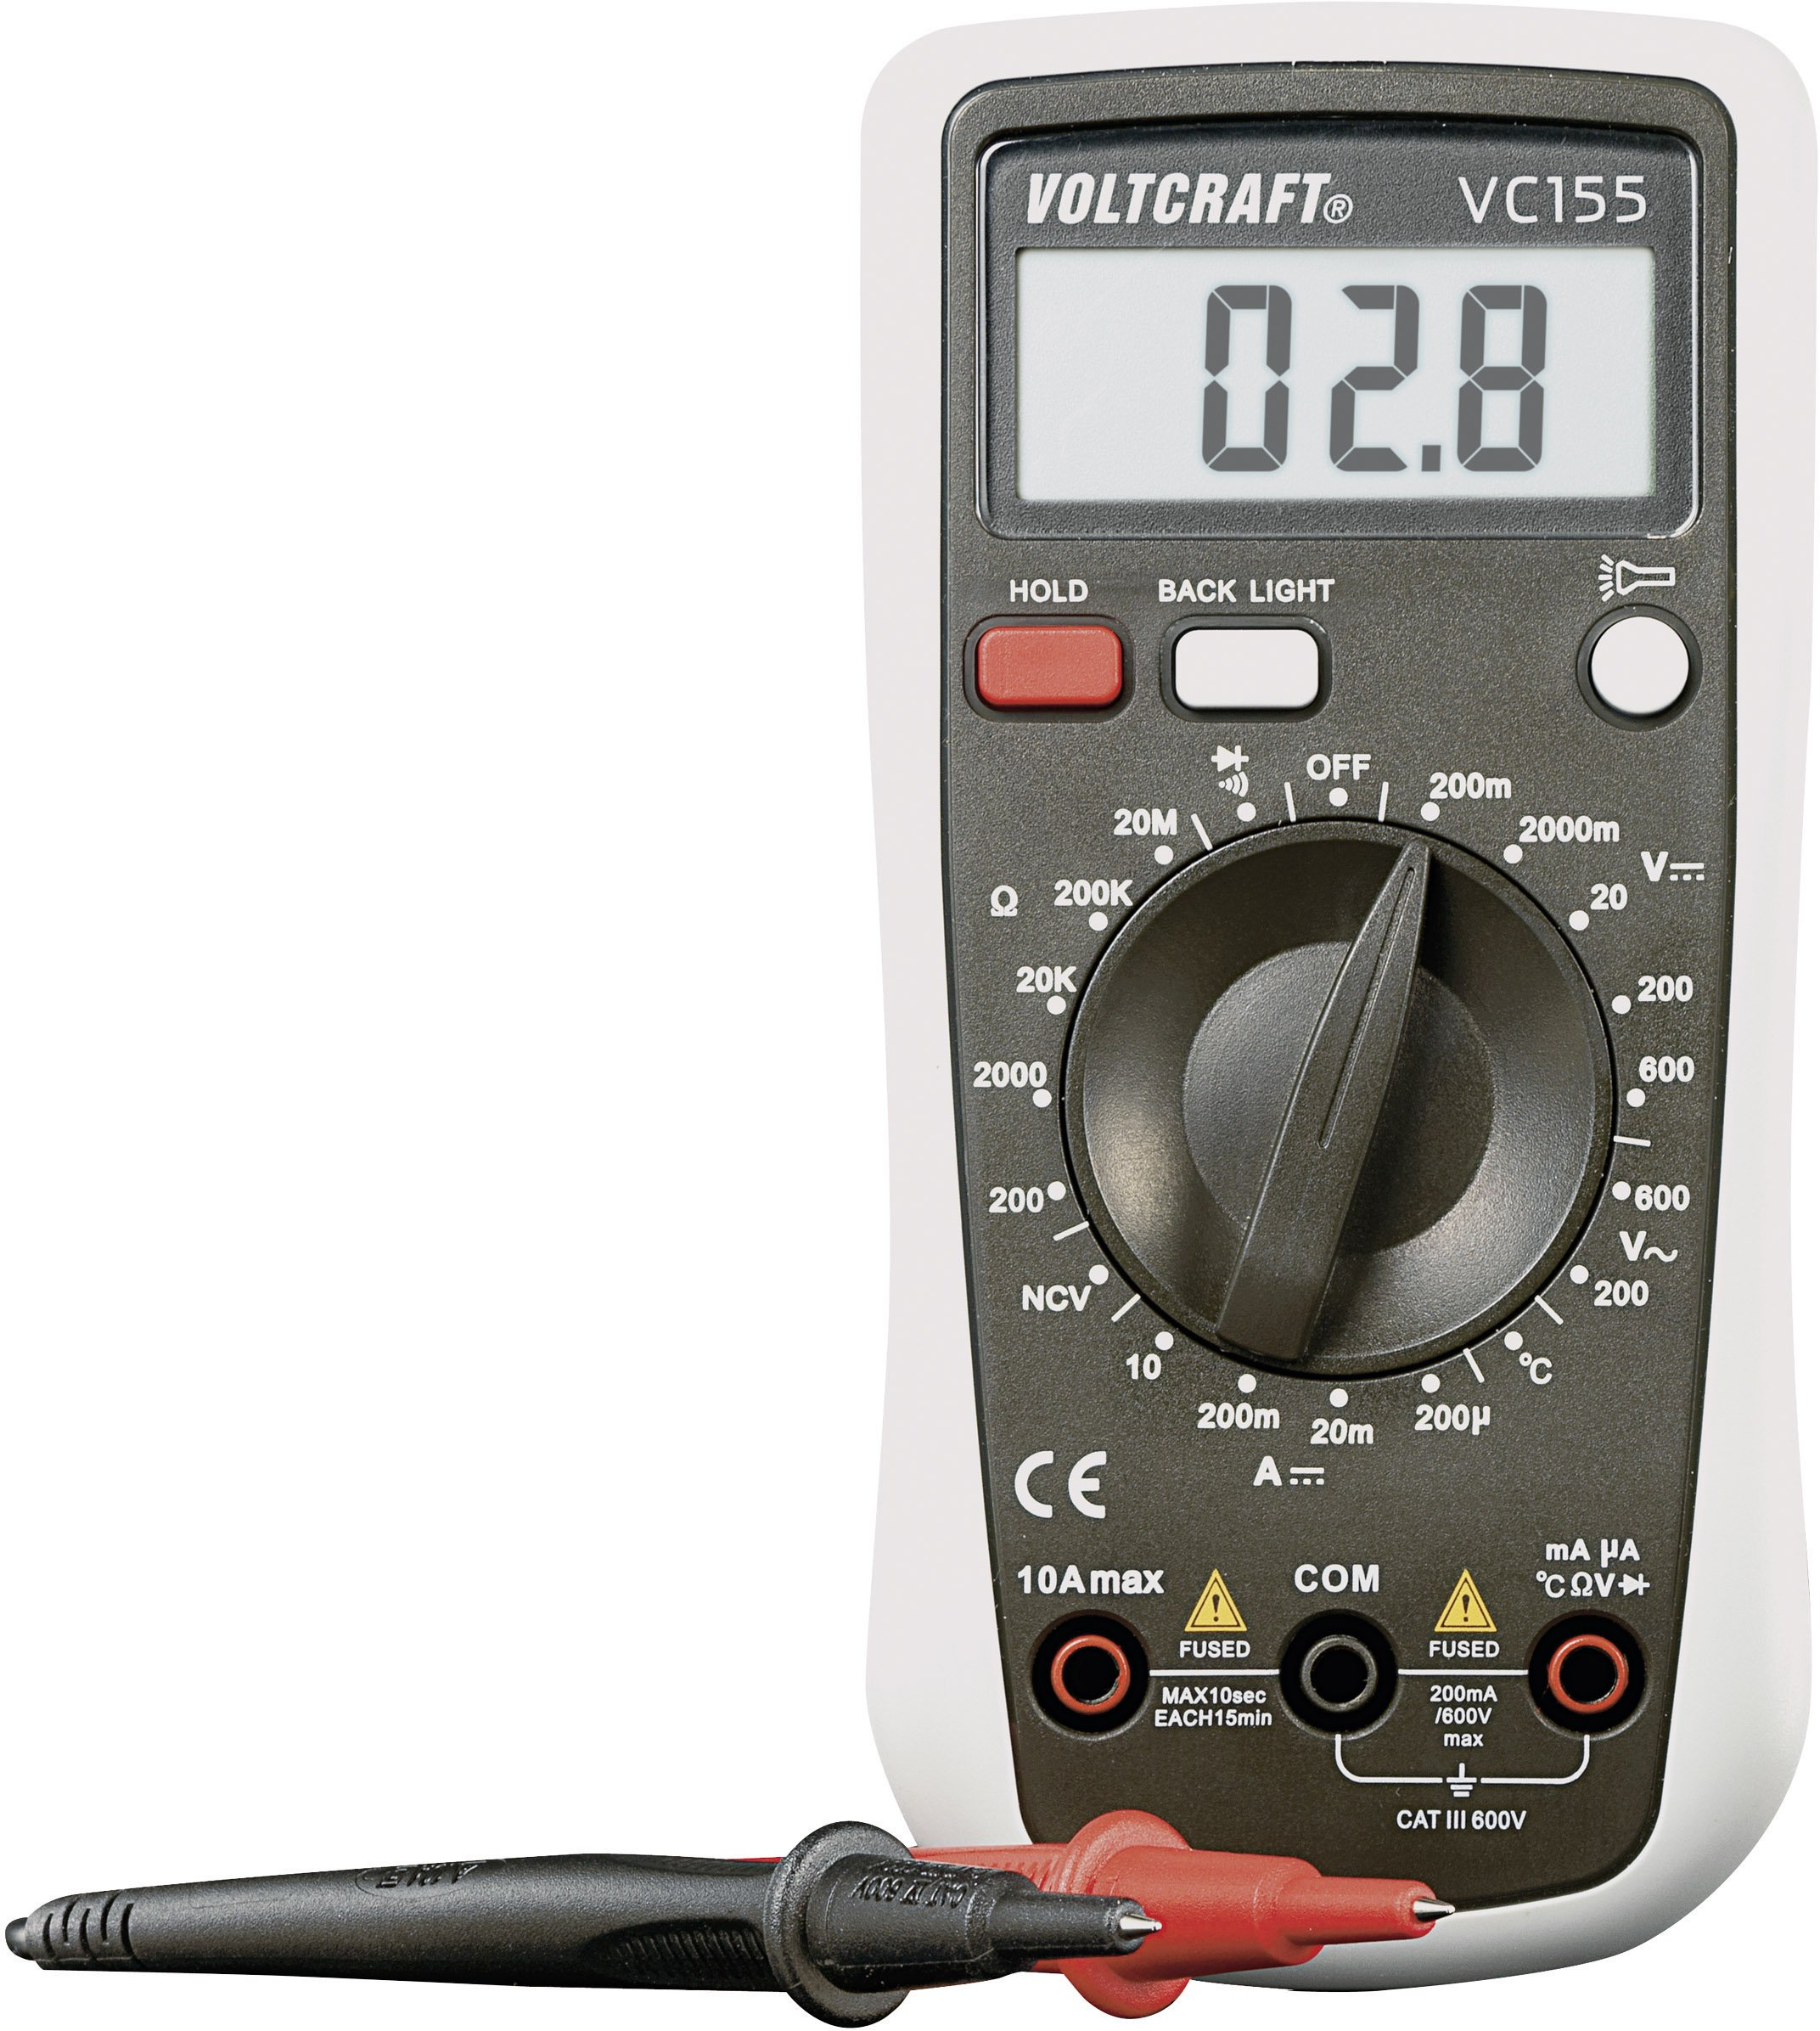 Voltcraft Digital Hand-held Multimeter, Model: VC155, 2000 counts, AC/DC, Reading Category CAT III 600V, 0.5% Basic Accuracy, Manual Range with Hold Function, Torch, Back Light Function